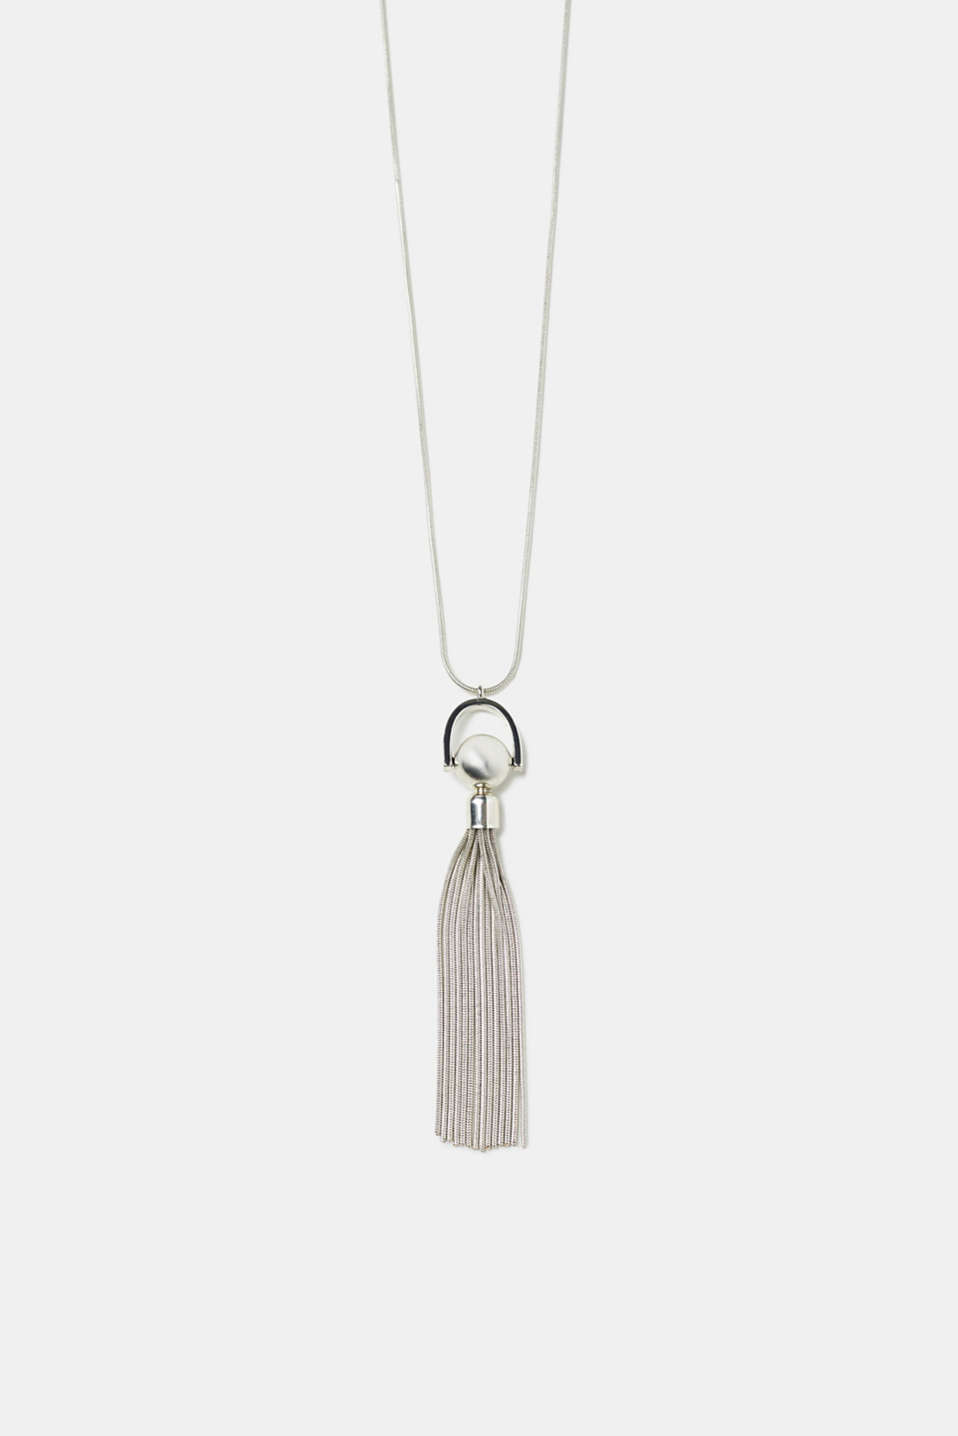 The distinctive tassel made of metal chains makes this long necklace really eye-catching.